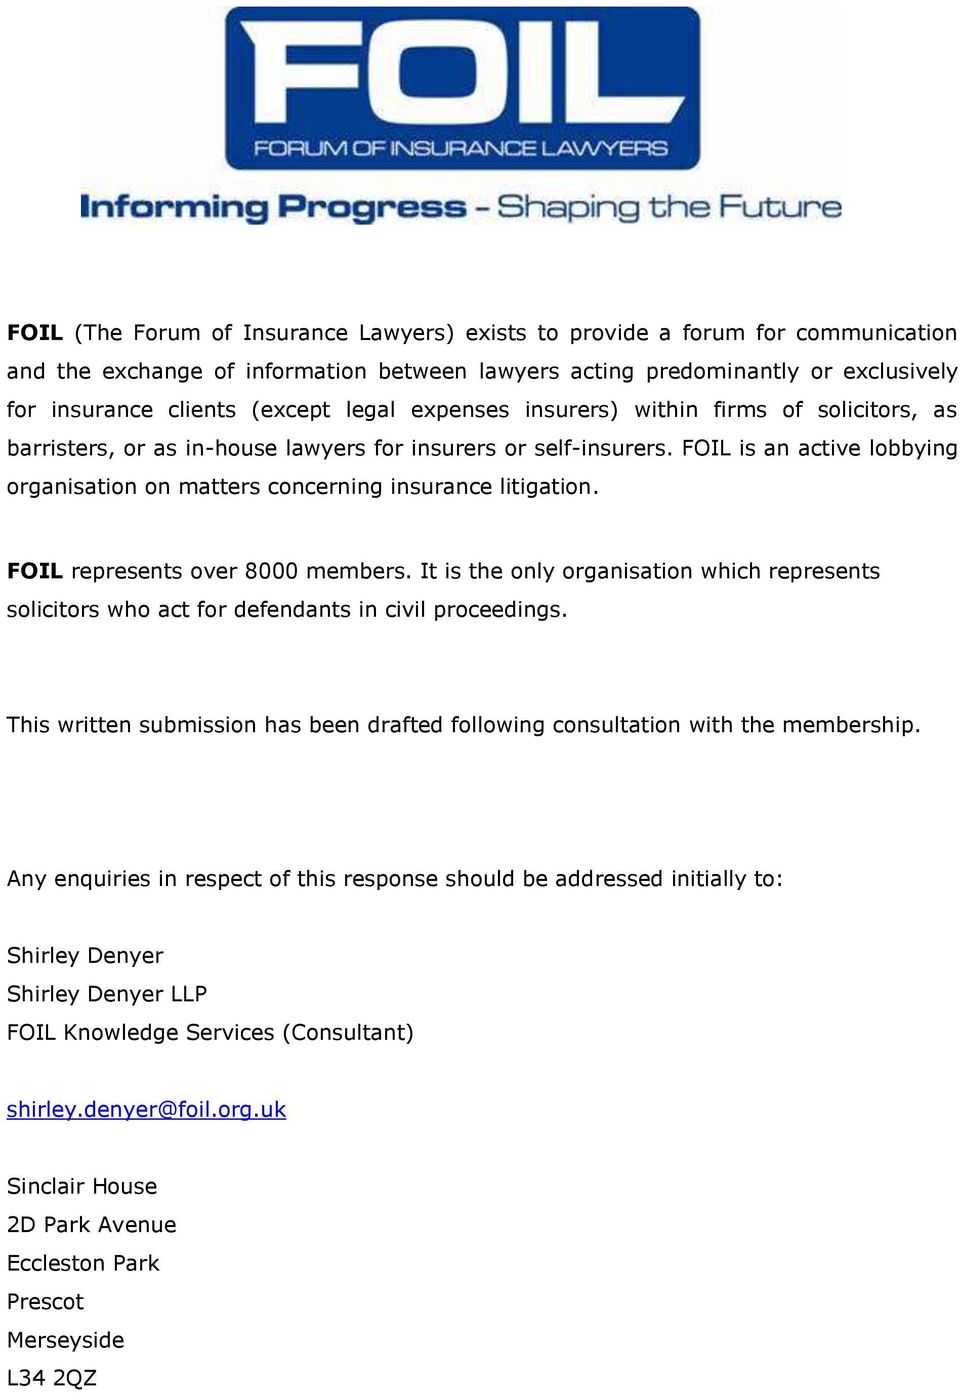 FOIL is an active lobbying organisation on matters concerning insurance litigation. FOIL represents over 8000 members.